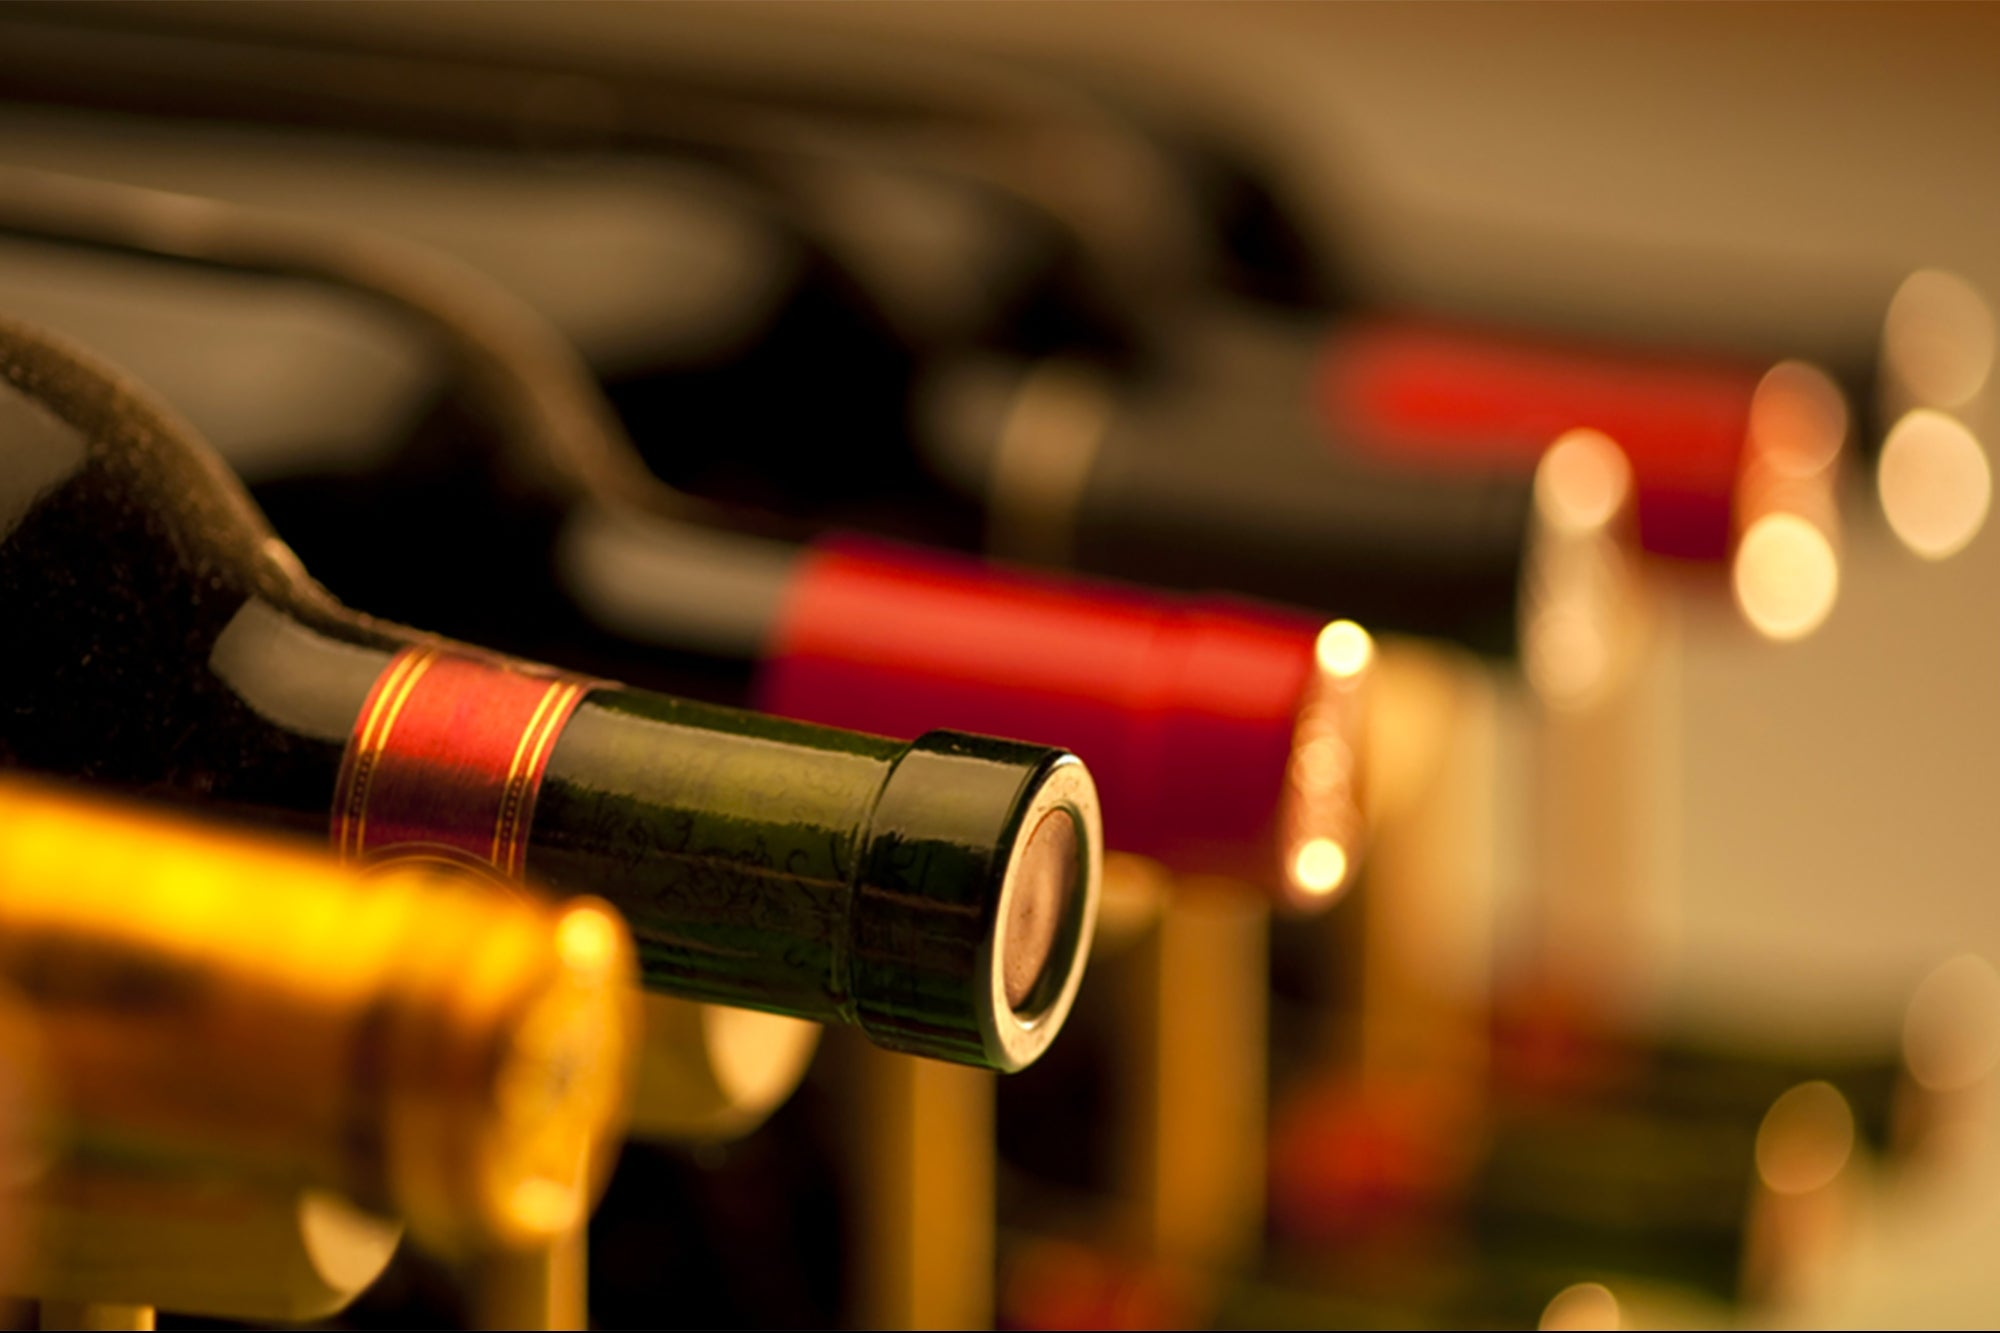 The Strong Case for Wine as an Alternative Investment